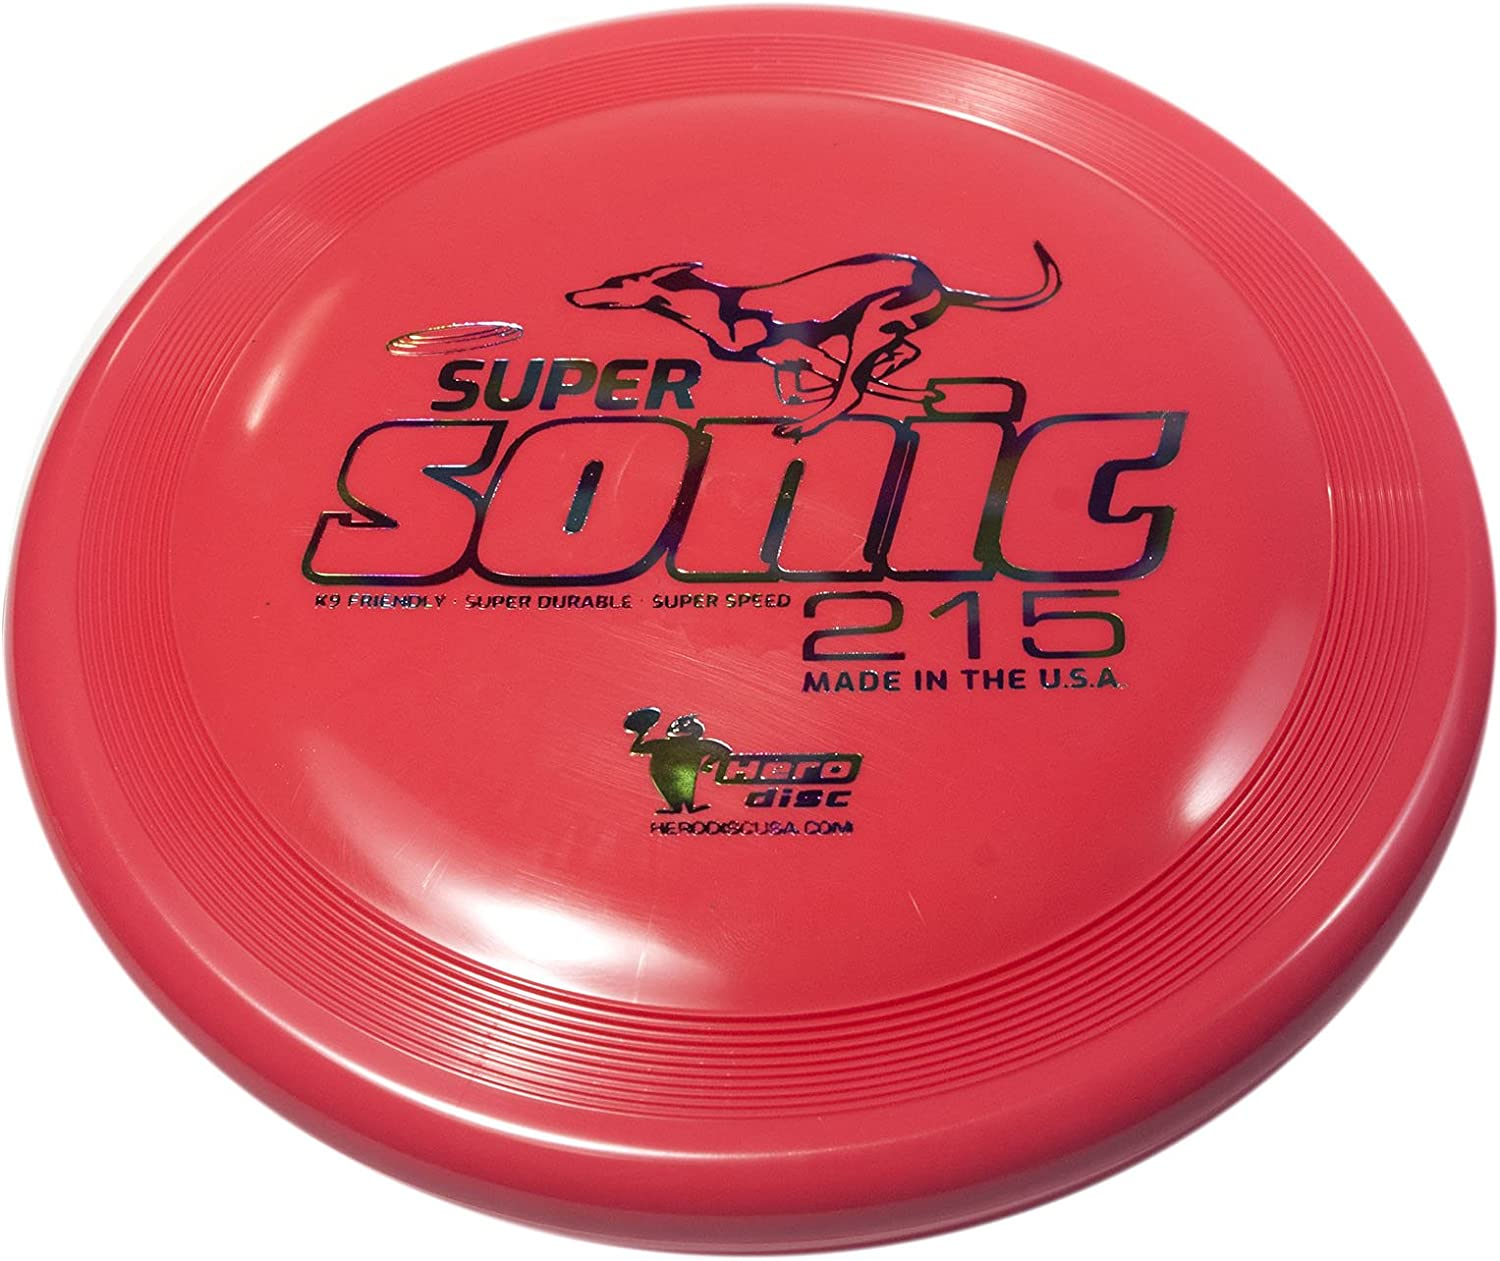 Hero SuperSonic 215 Puncture Resistant Dog Frisbee Mid Size Dog Disc US Made